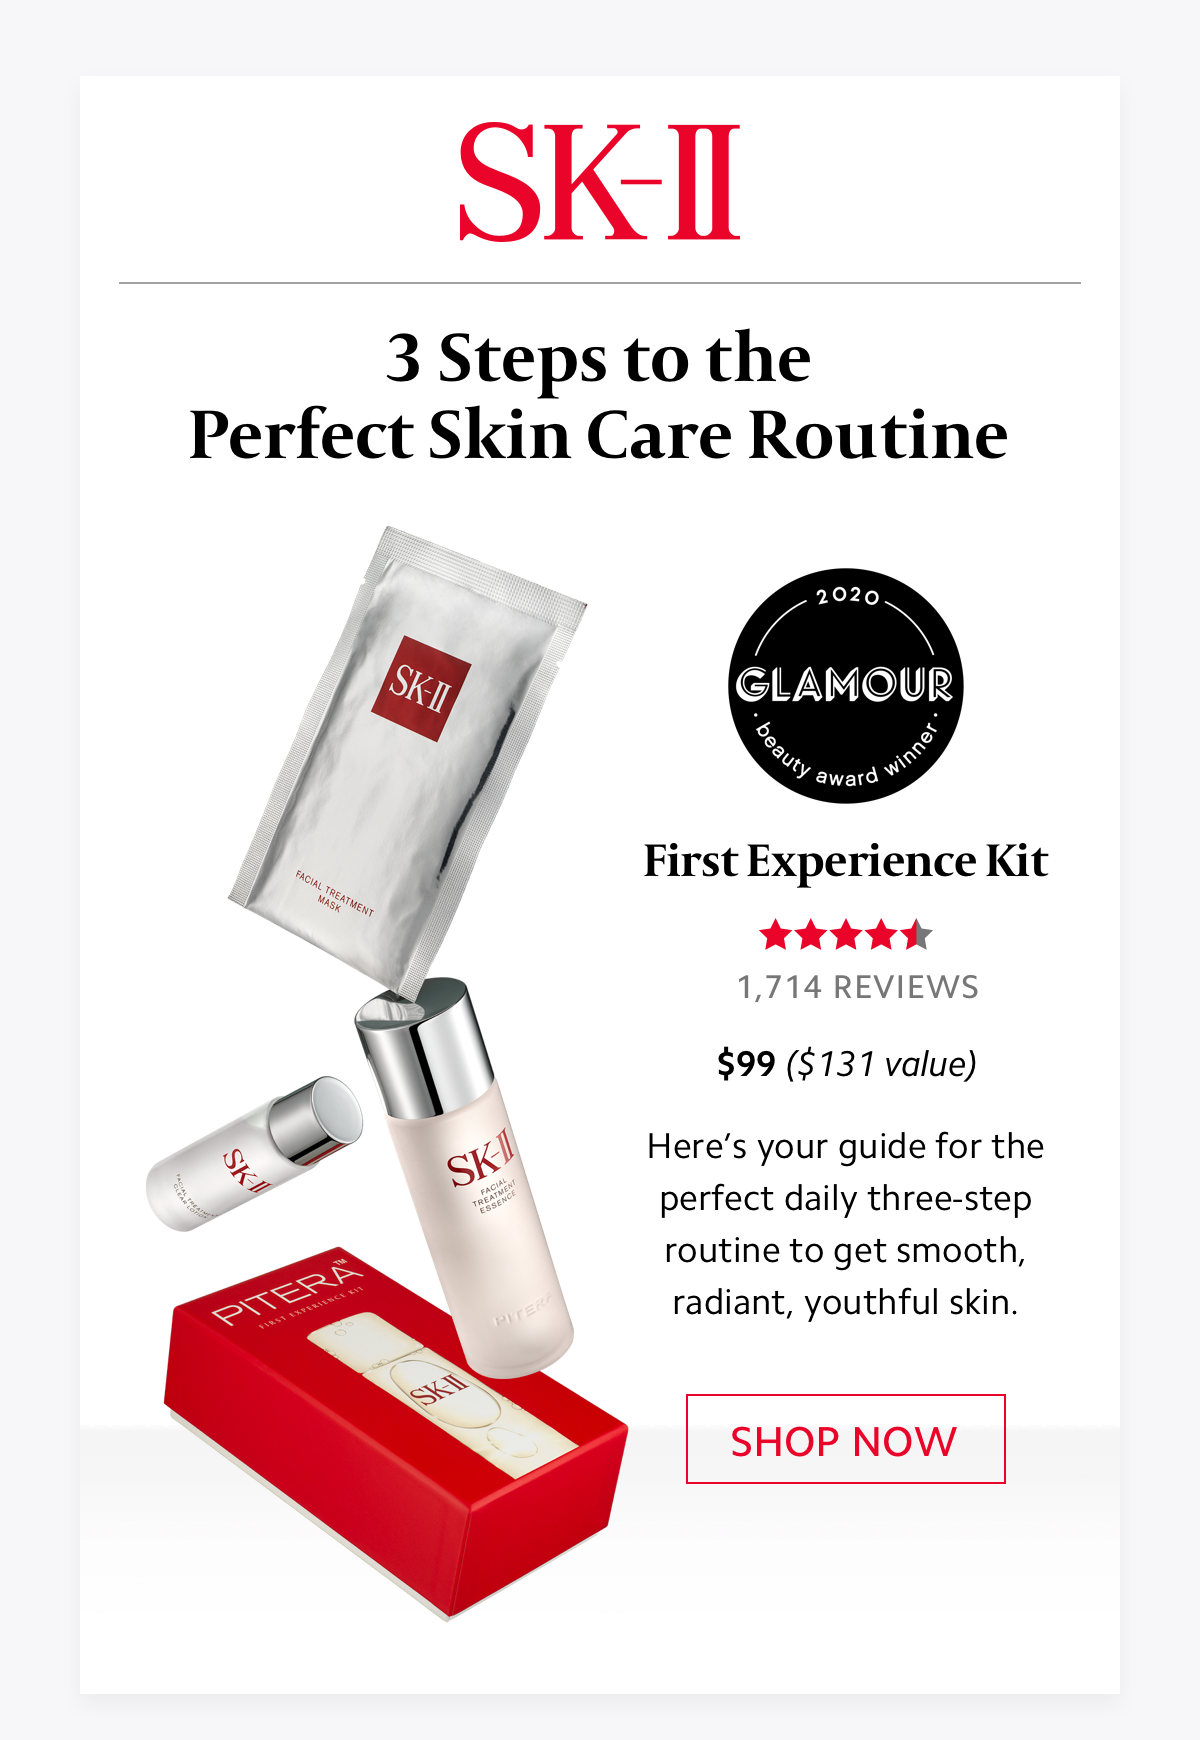 3 Steps to the Perfect Skin Care Routine